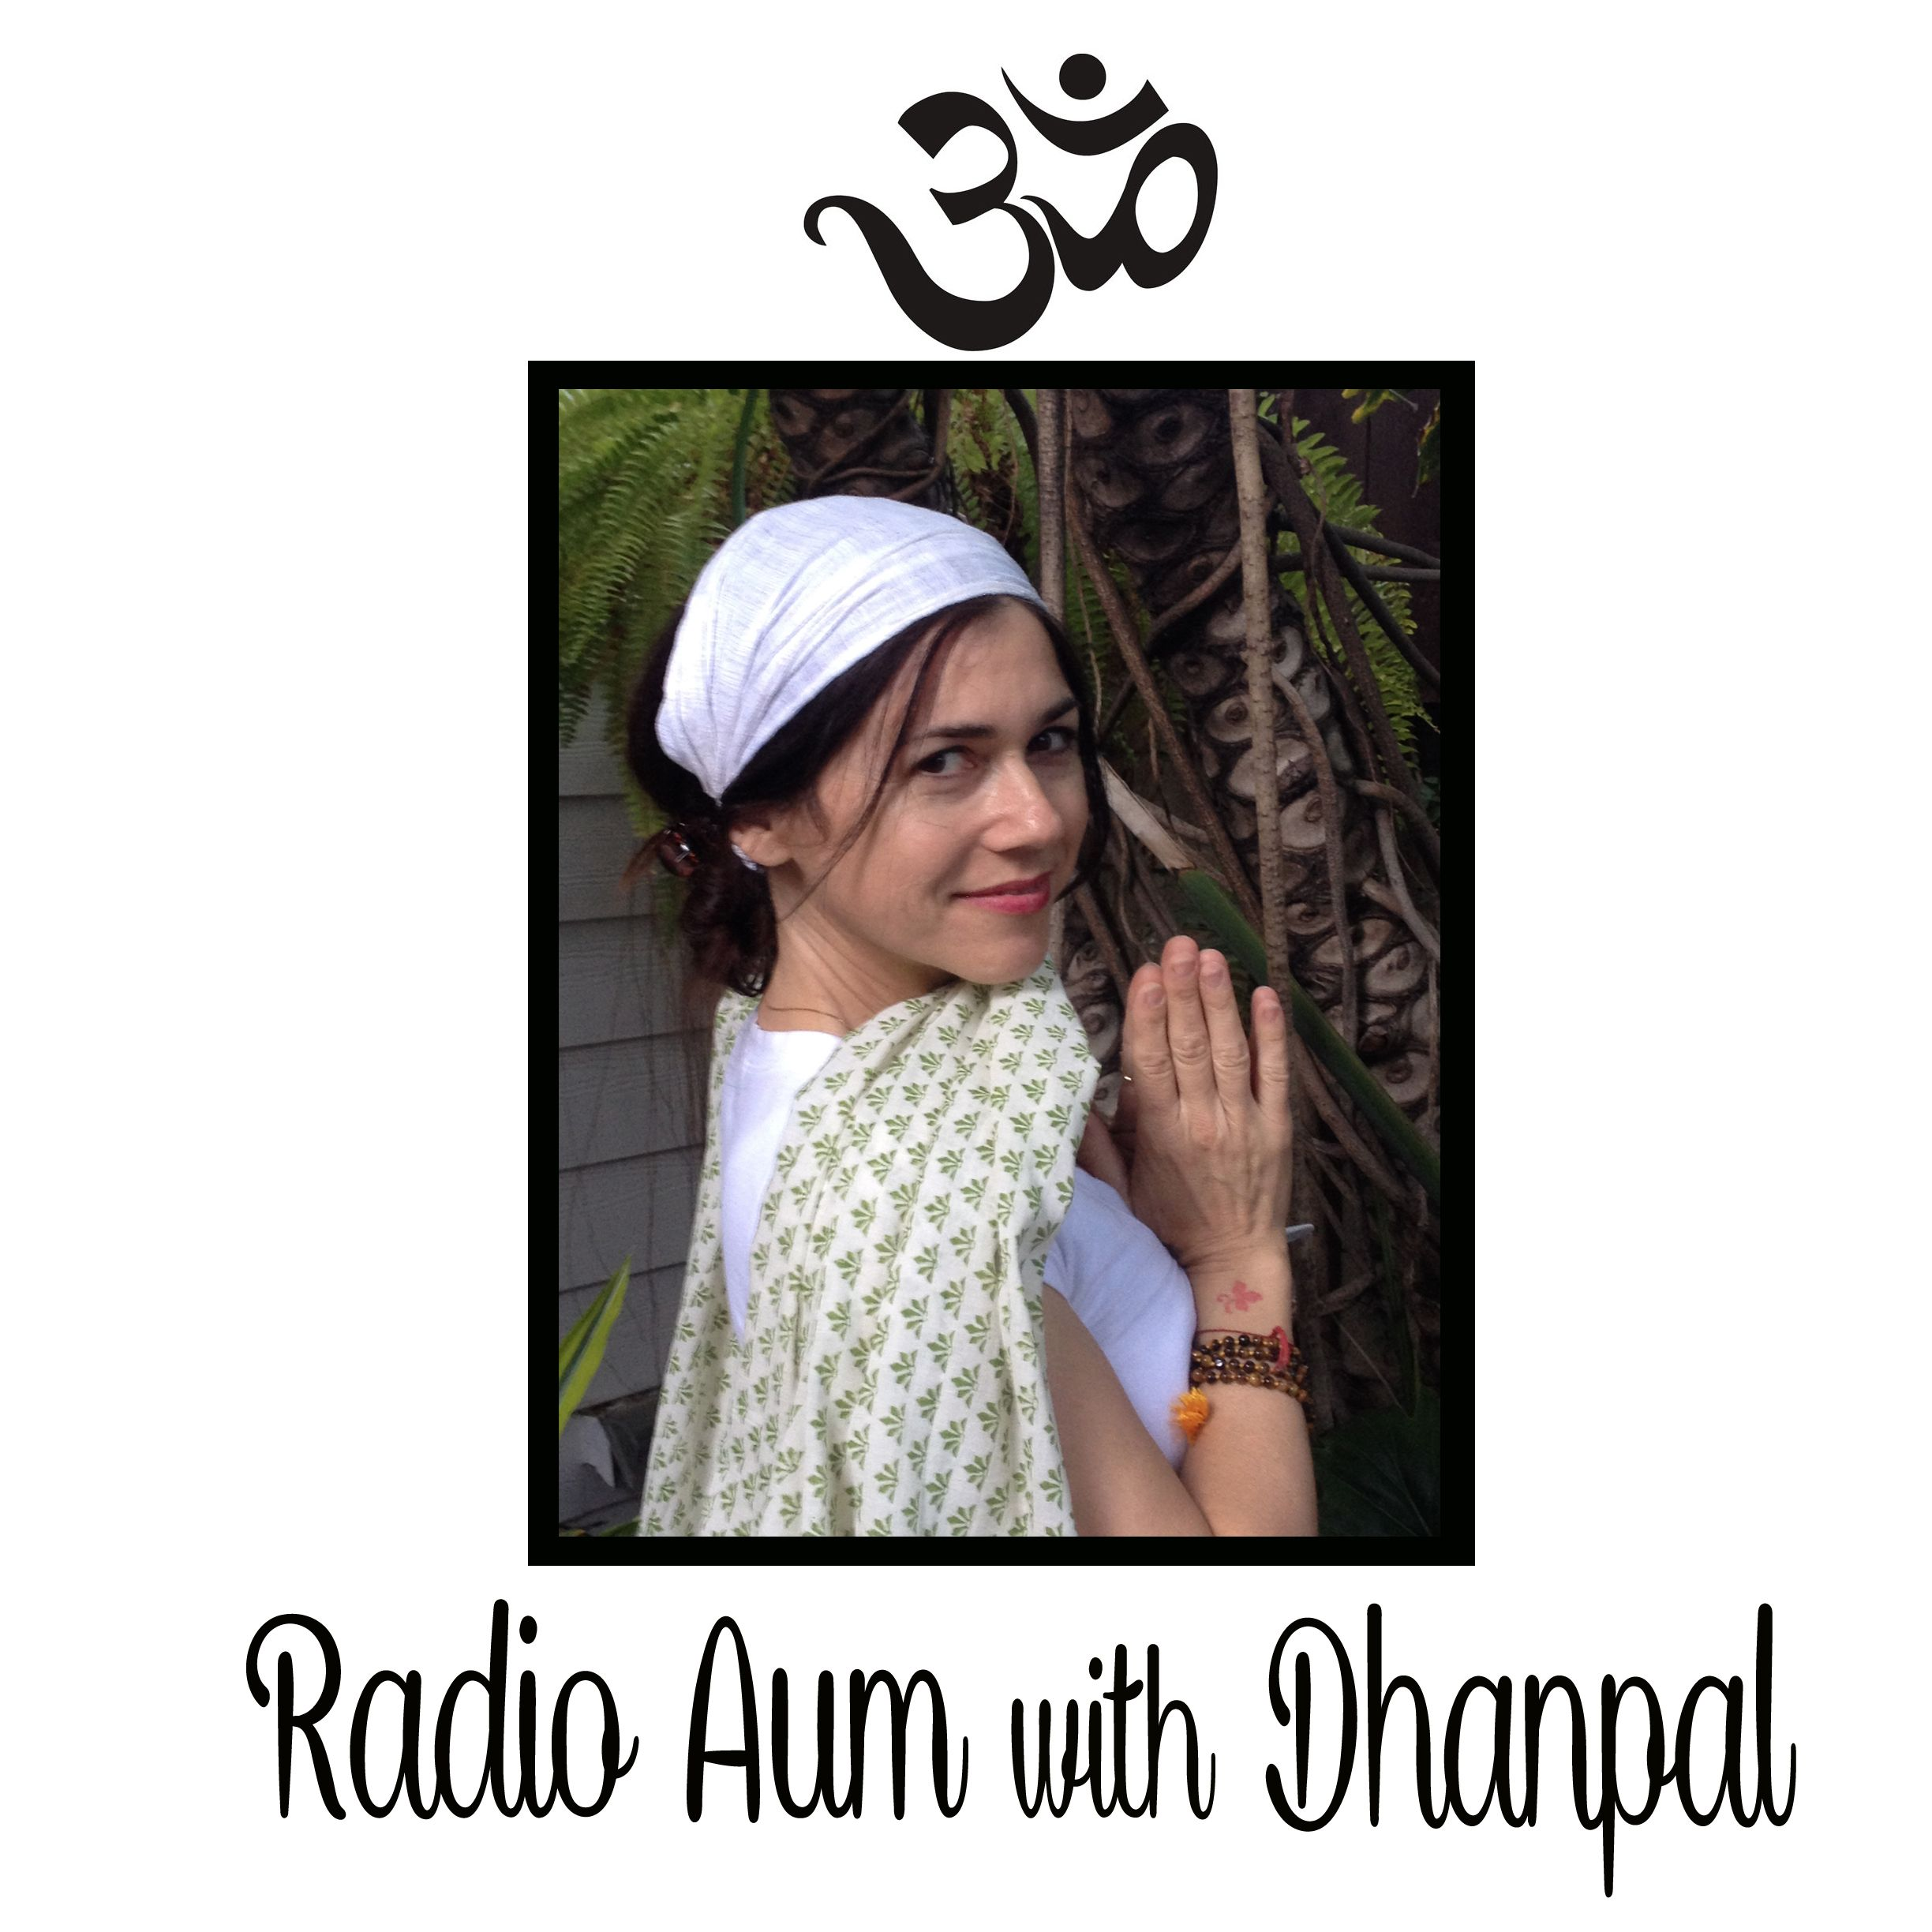 Radio Aum with Dhanpal